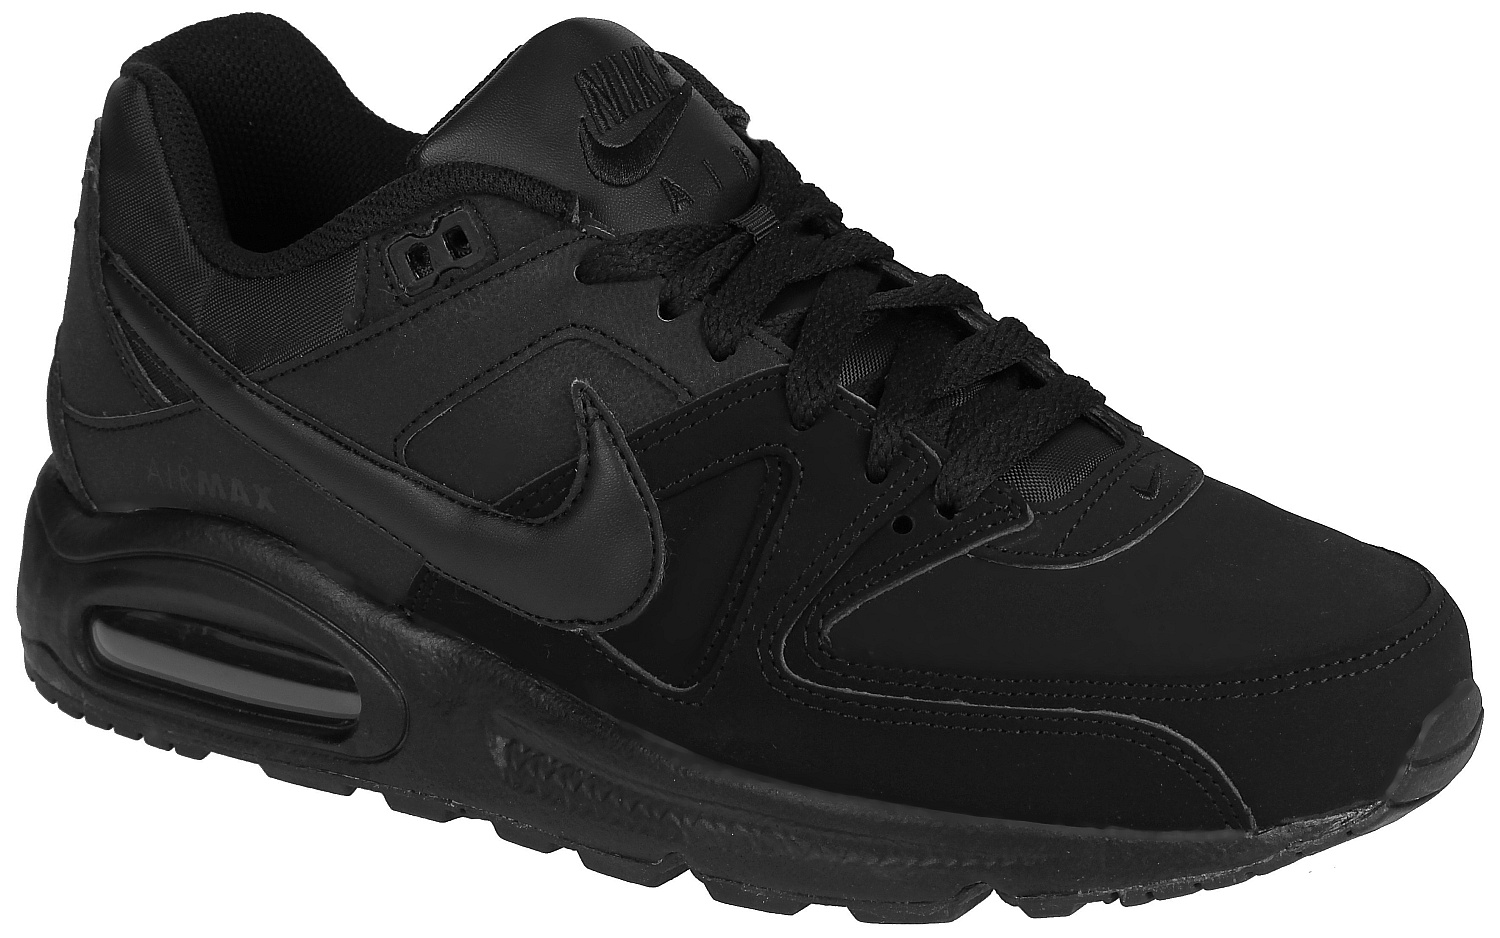 uk availability cee2a 36946 shoes Nike Air Max Command Leather - Black Black Anthracite - Snowboard  shop, skateshop - snowboard-online.eu